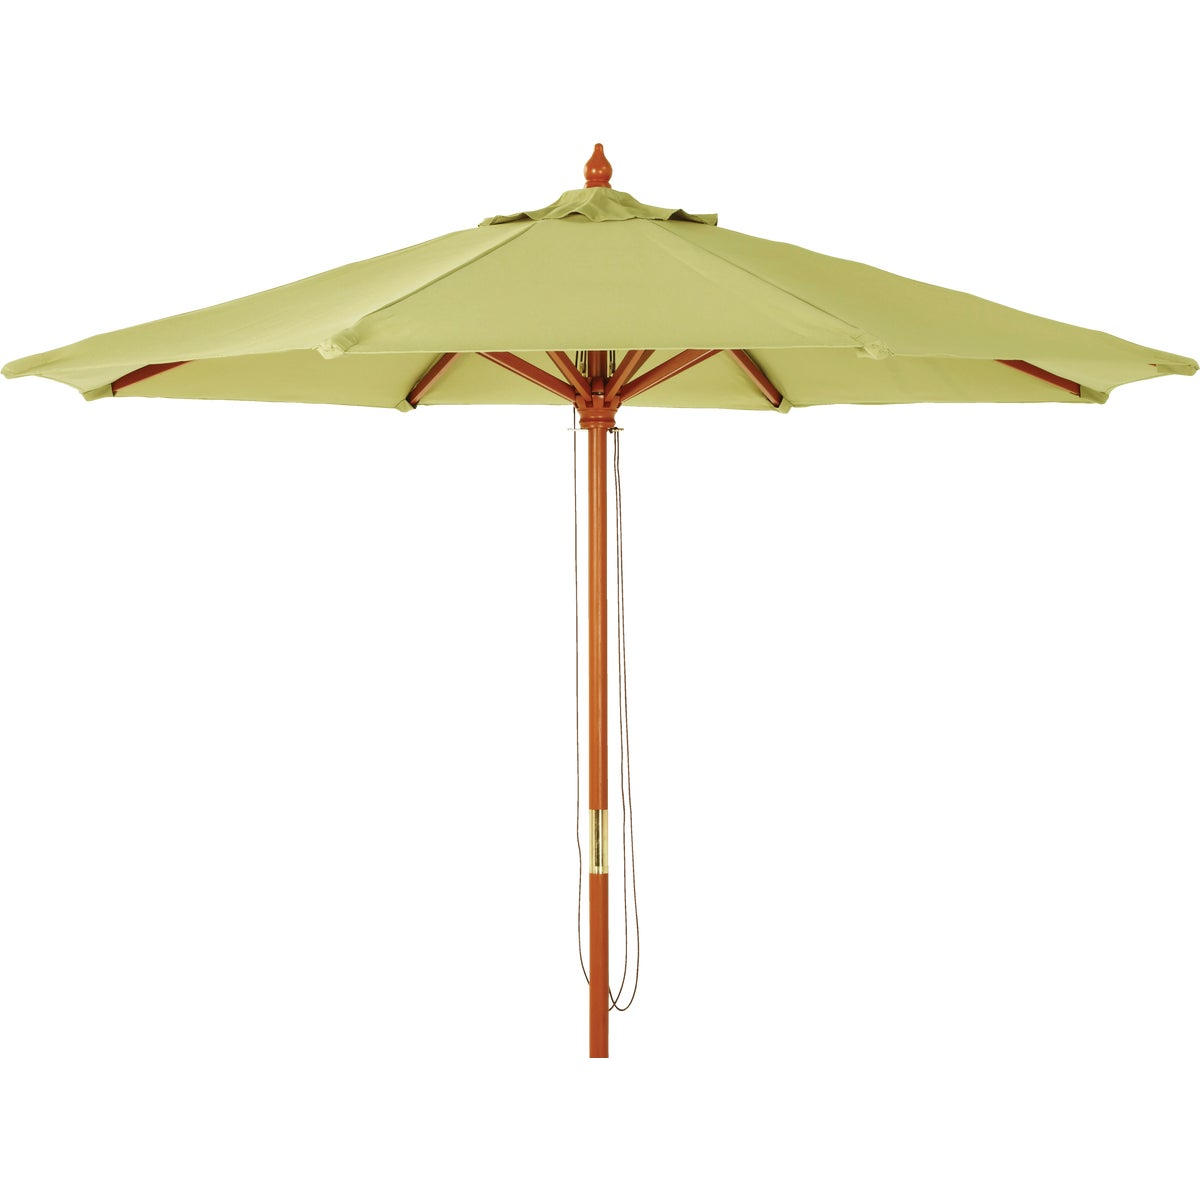 7.5' MKT SAGE UMBRELLA - TJWU-003A-230-SGE by Do it Best